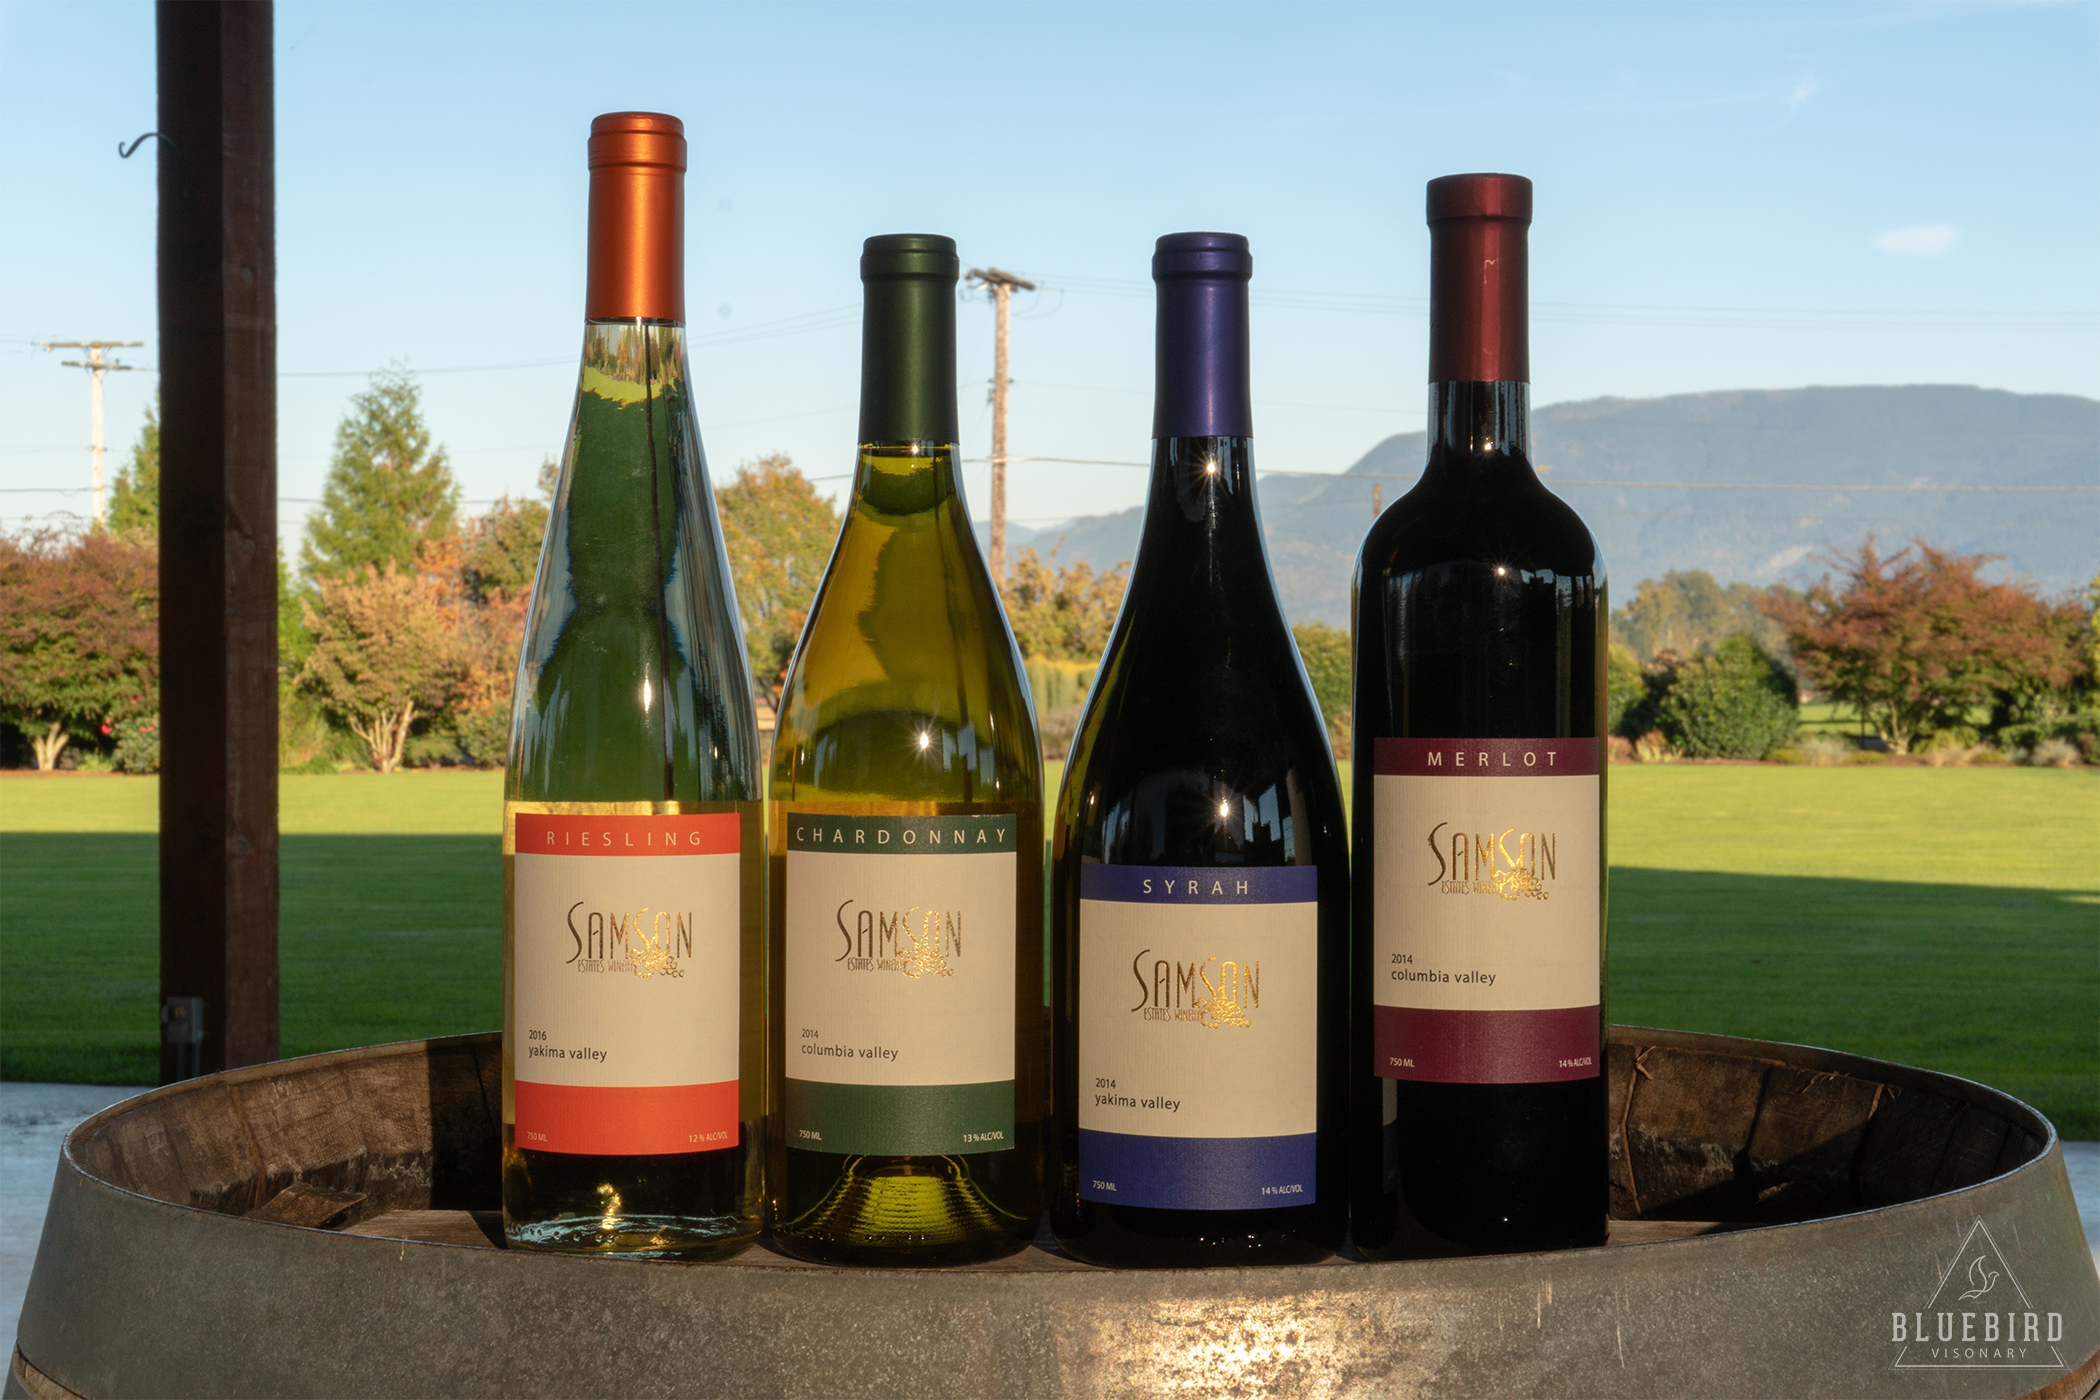 Varietal Wines - 2016 Yakima Valley Riesling· 2013 San Francisco Chronicle Wine Competition – Gold· 2013 Florida State Fair Wine Competition – Silver· 2009 Tri-Cities Wine Festival – Gold· 2006 San Francisco Chronicle Wine Competition – Silver· 2005 Tri-Cities Wine Festival – Silver·2005 International Eastern Wine Competition – Silver2017 Columbia Valley Chardonnay· 2008 Columbia Valley Chardonnay 2006 Walter Clore Award – Best Chardonnay· 2006 Washington State Wine Competition – Gold· 2006 Northwest Wine Summit – Gold· 2006 Tri-Cities Wine Festival – Silver2017 Yakima Valley Syrah· 2014 Finger Lakes International Wine Competition – Silver· 2013 Florida State Fair Wine Competition — Silver2016 Columbia Valley Merlot- 2019 Texas Intl. Wine Competition - Gold· 2018 Texas Int. Wine Competition -Gold· 2014 Florida State Fair International Wine Competition – Silver